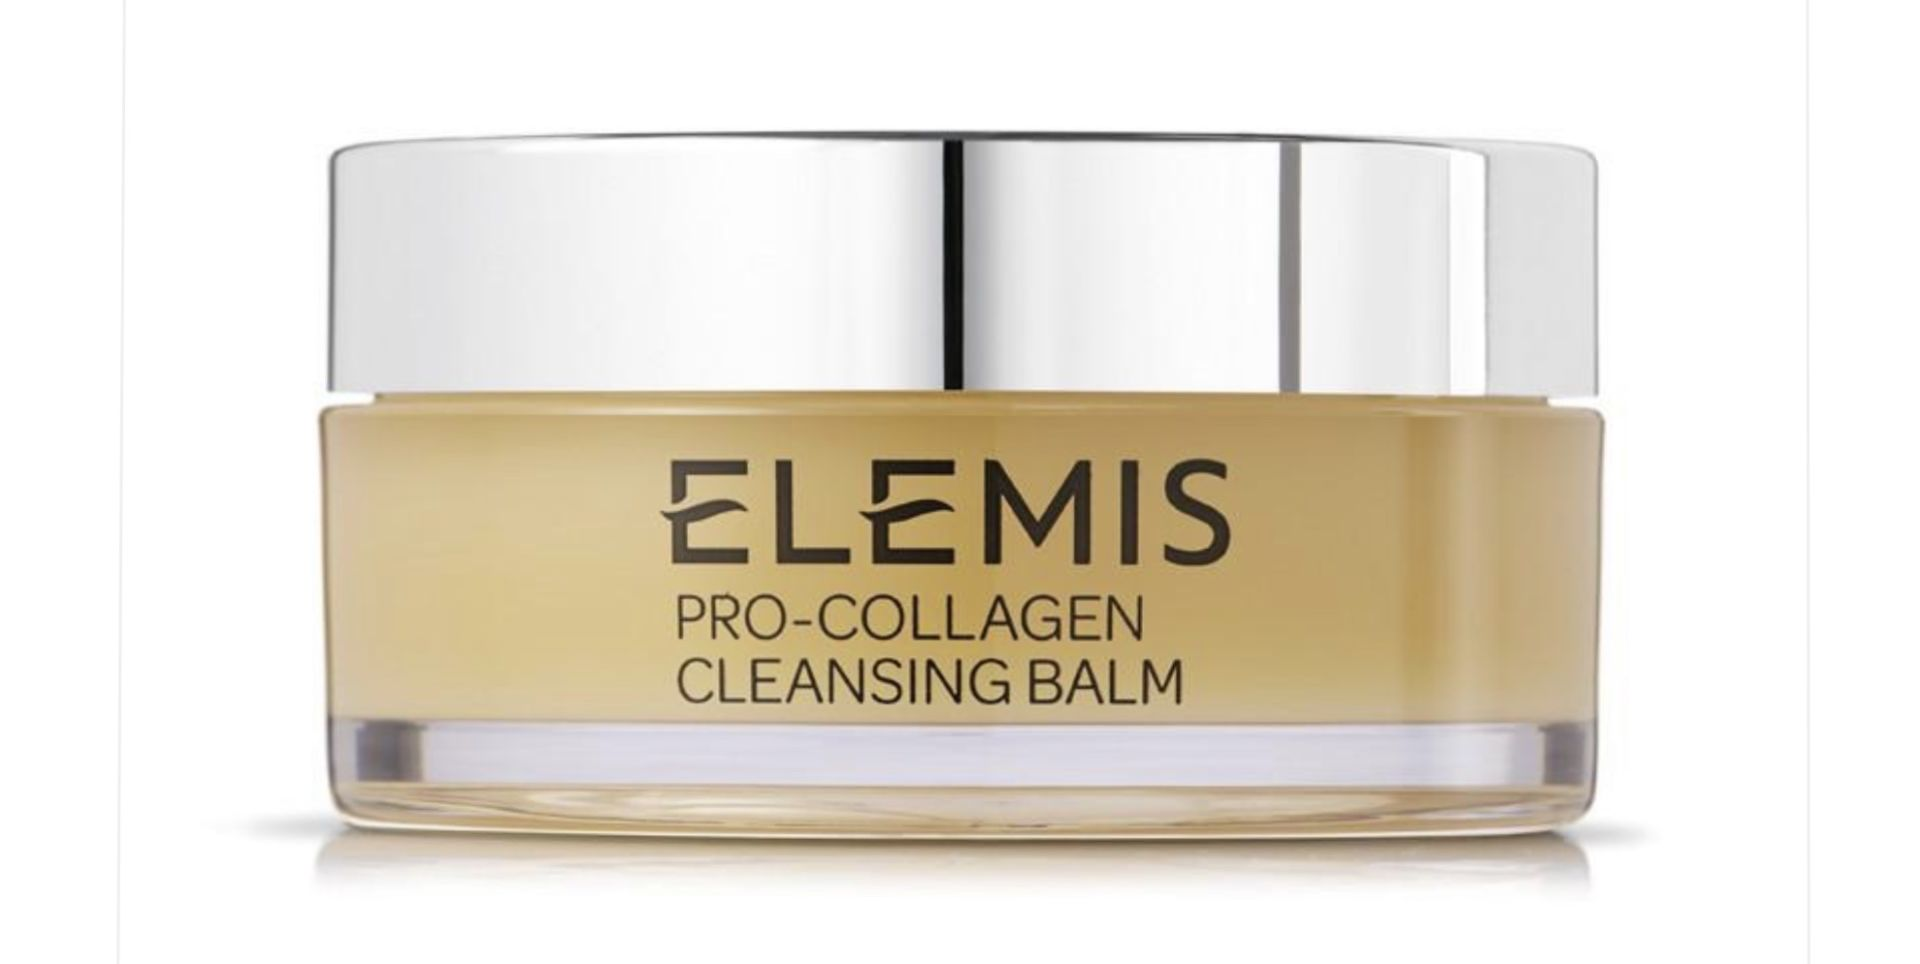 ELEMIS CLEANSING BALM FOR ALL SKIN TYPES